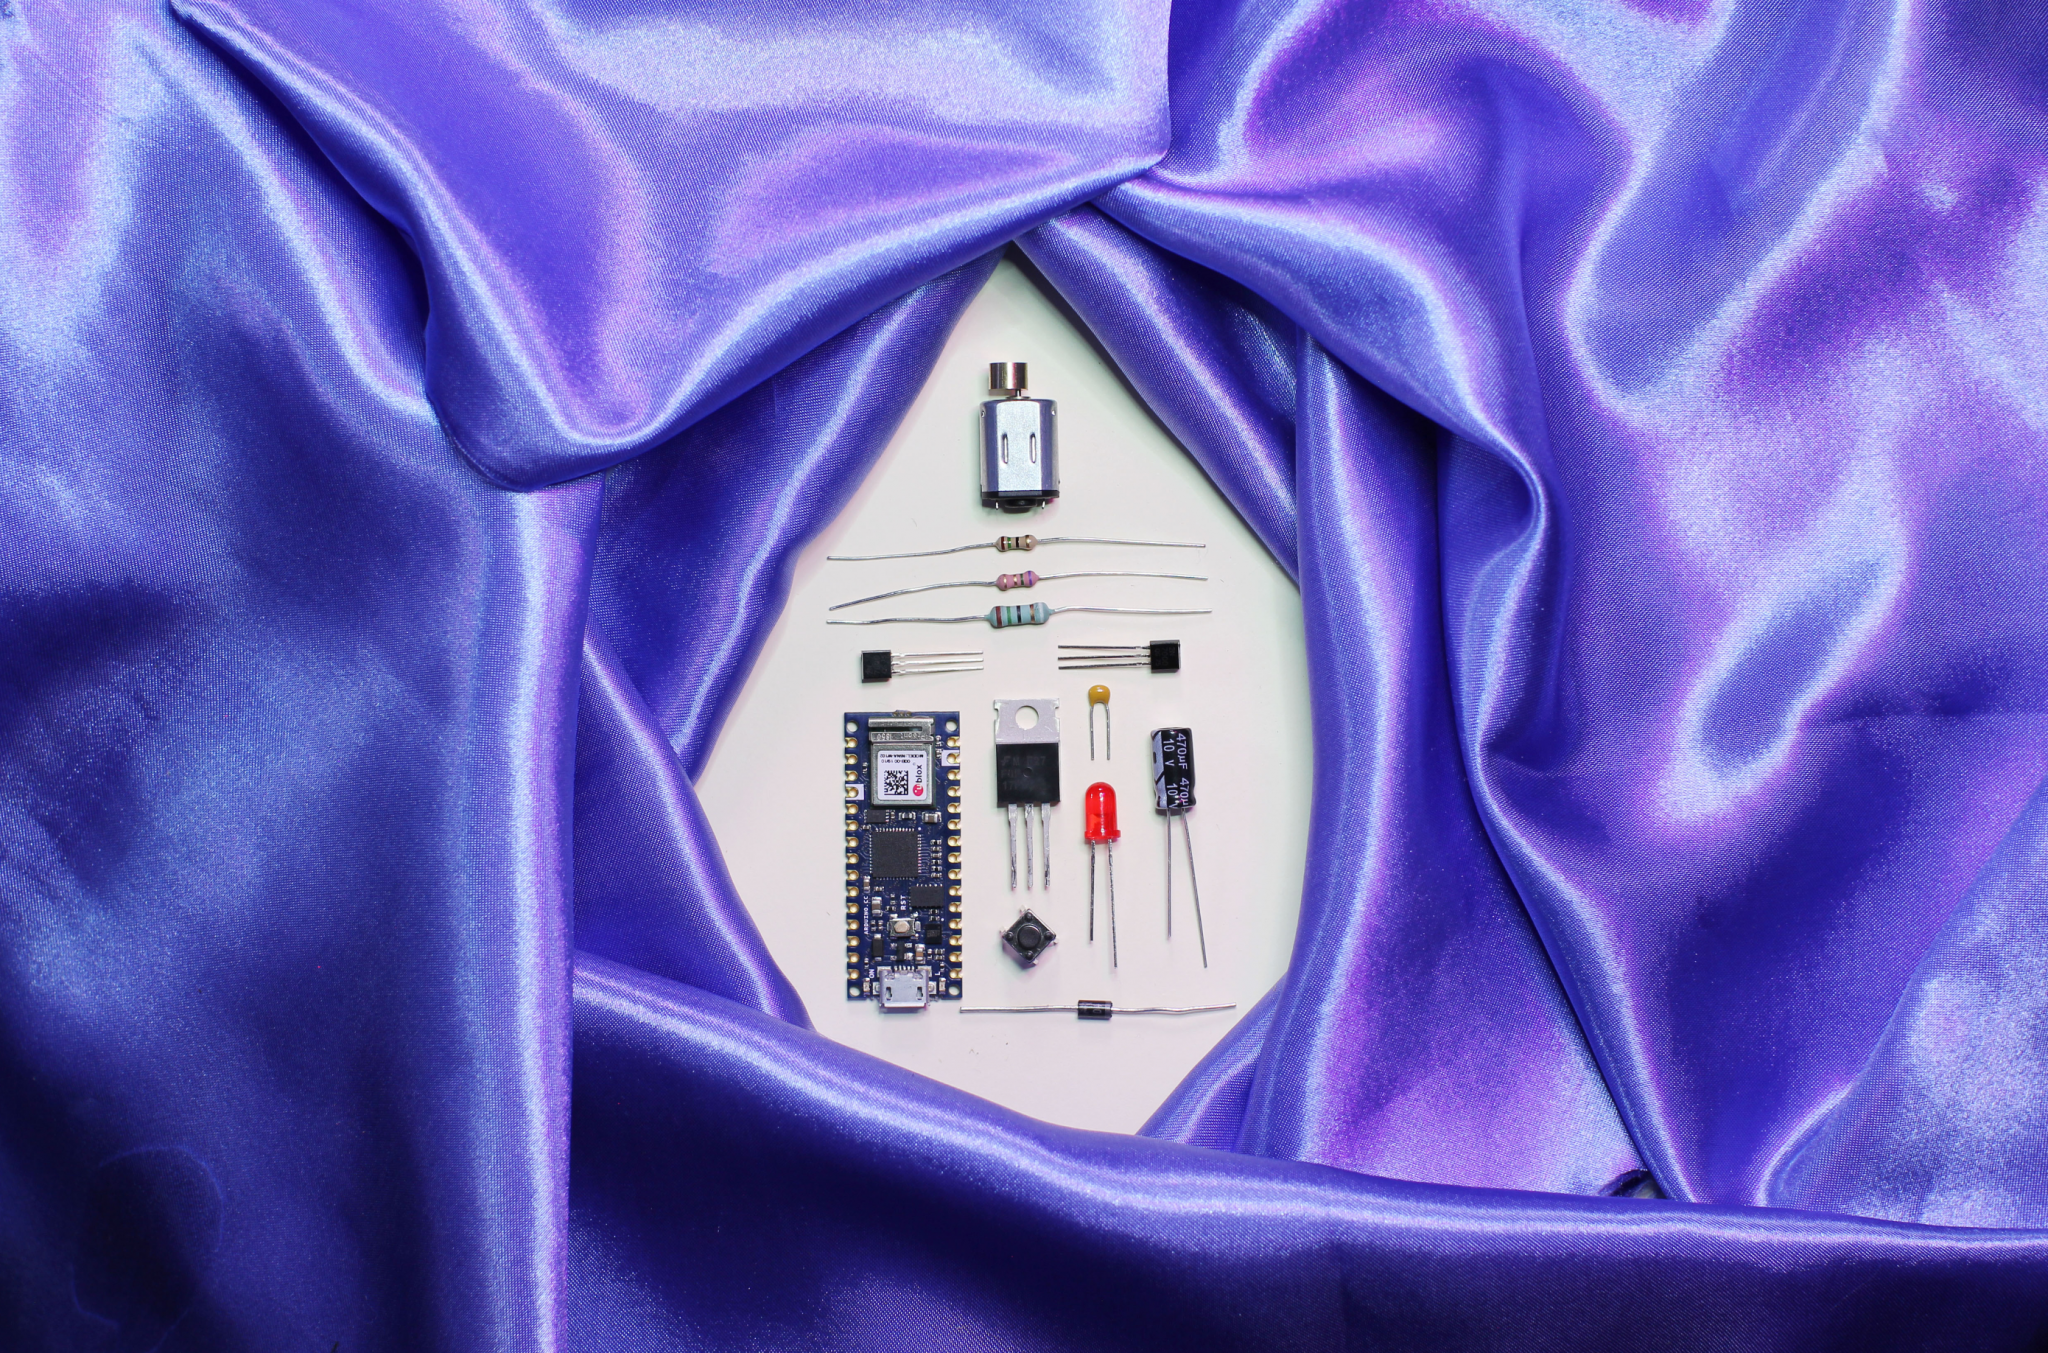 Photograph of sex toy parts on a purple velvet sheet background. The parts are placed in a hole cut in the middle shaped like a vulva or triangle shape.